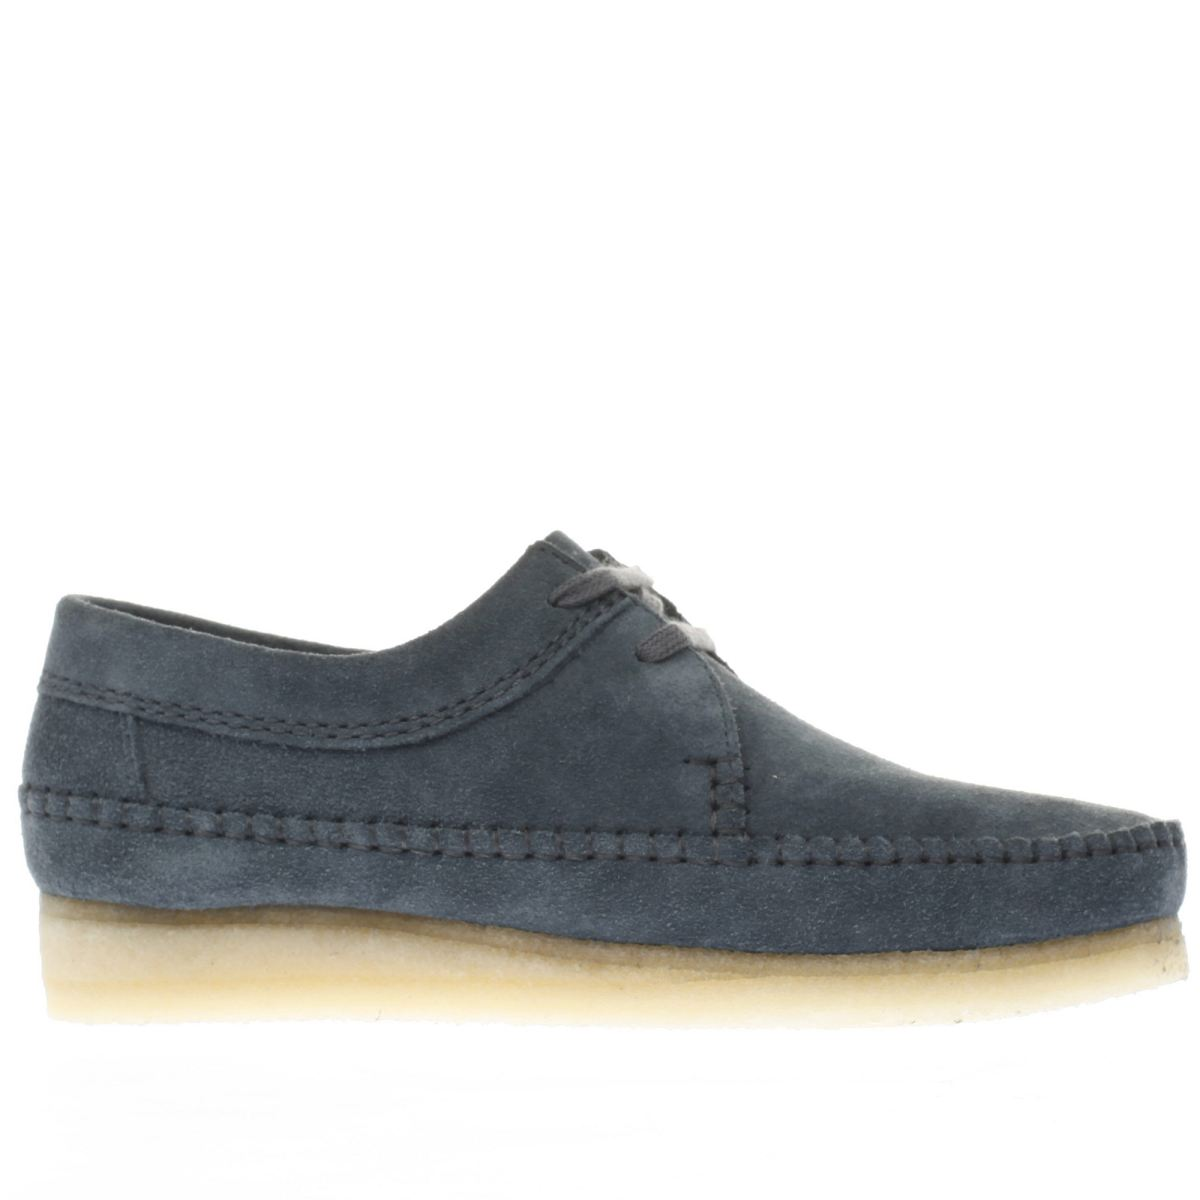 clarks originals blue weaver shoes